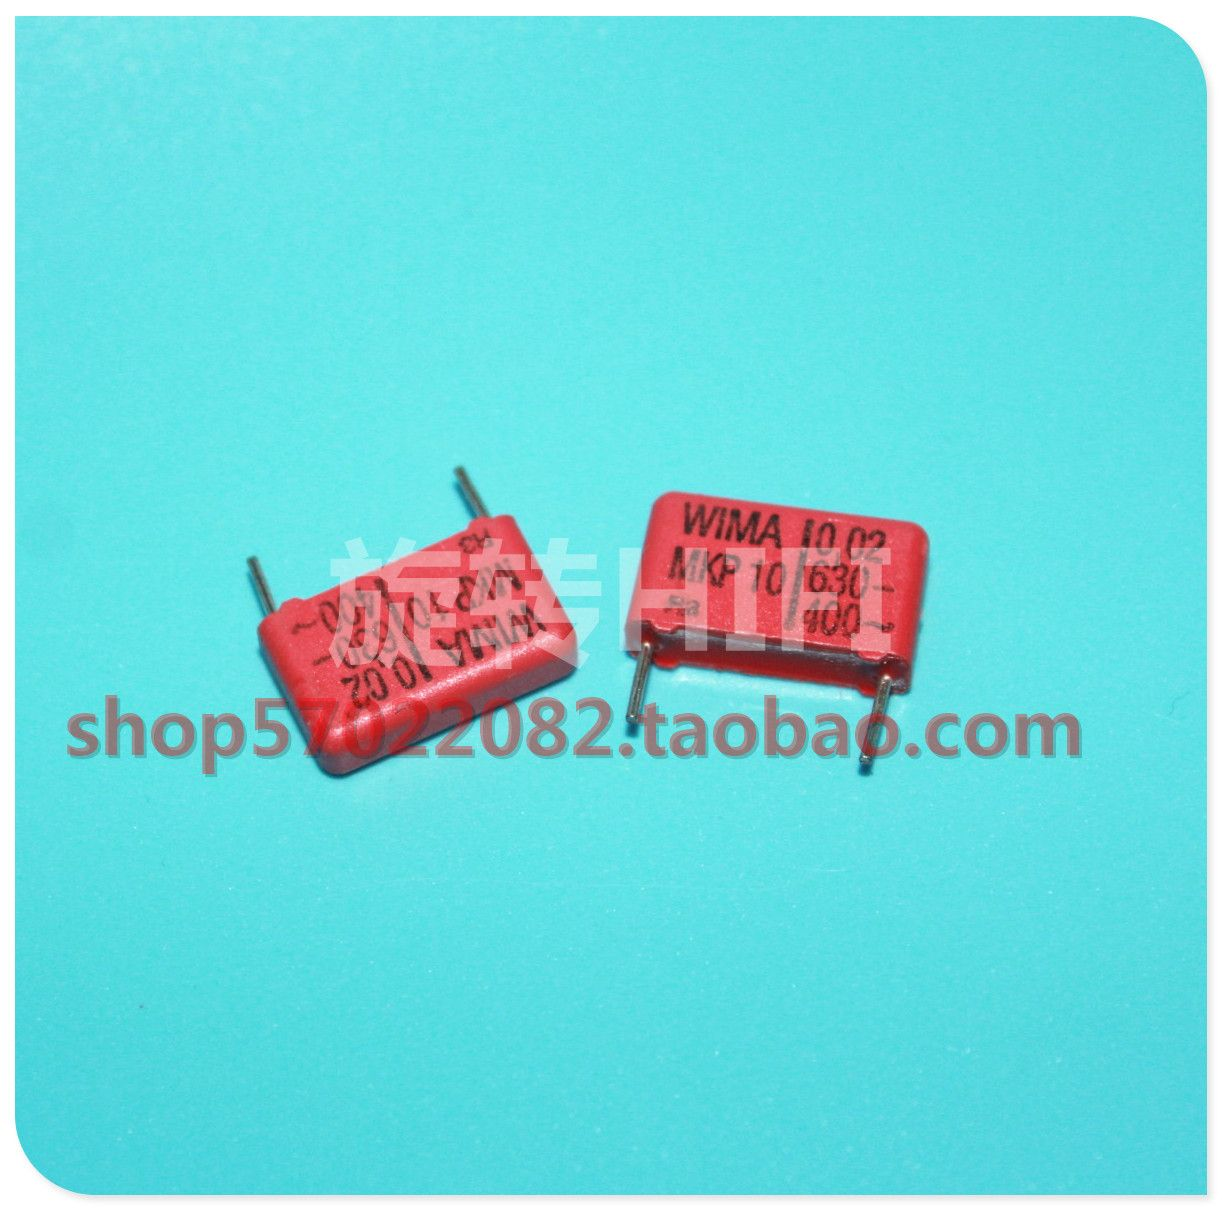 2018 hot sale 20PCS WIMA MKP10 0.02uf 2nf 203/630v new audio coupling capacitor p15 free shipping